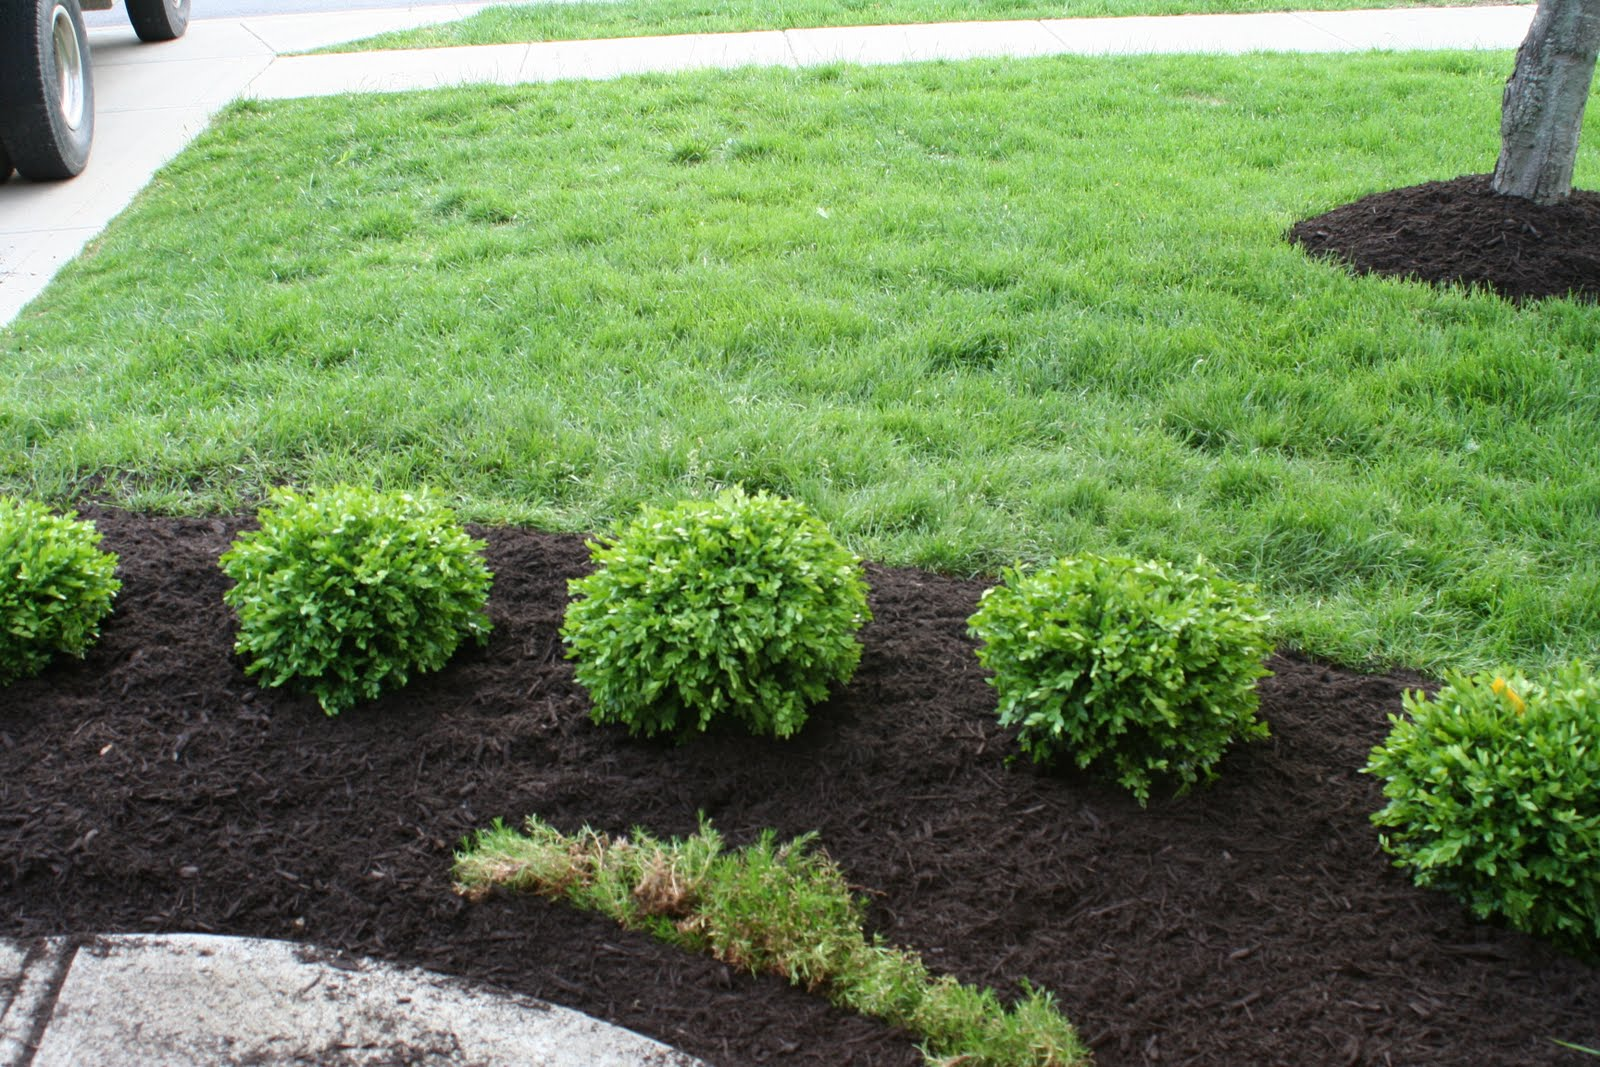 20 cozy green shrubs for landscaping images landscape ideas On low bushes for landscaping